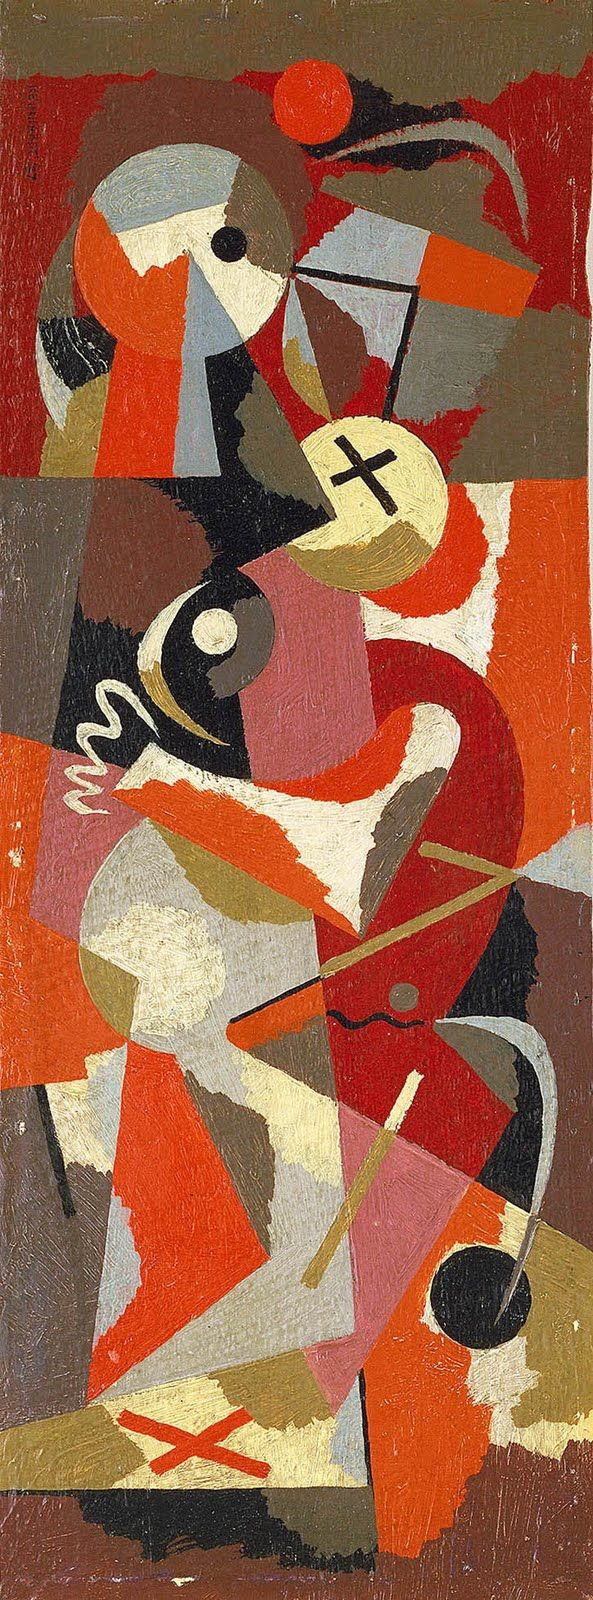 Untitled (1937) by American abstract expressionist Ad Reinhardt (1913-1967). Oil on wood. via Poul Webb art blog